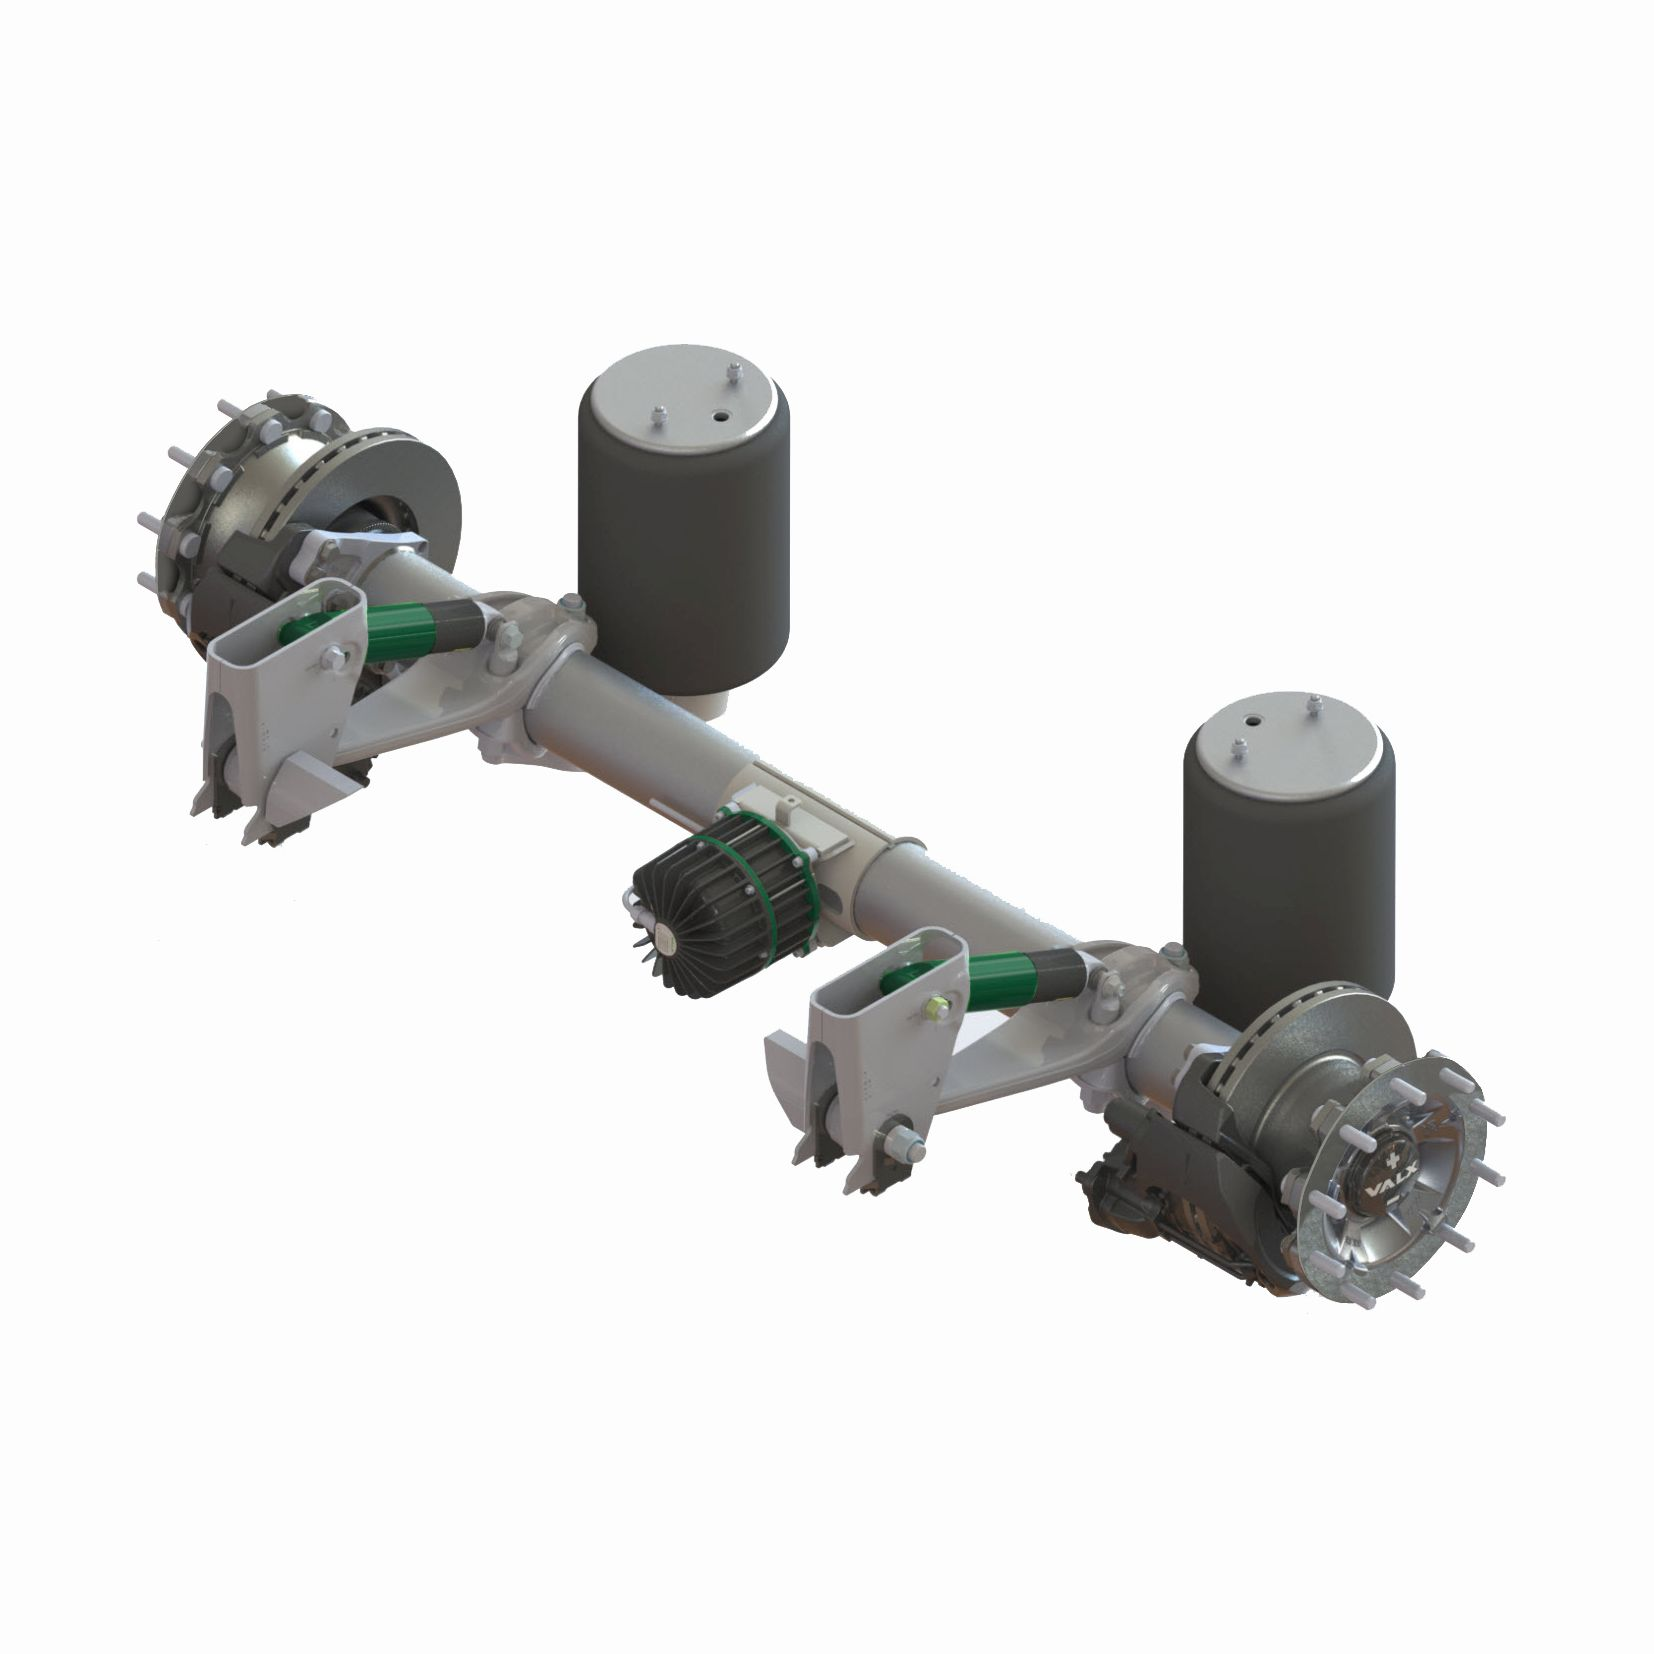 Drum brake trailer axle